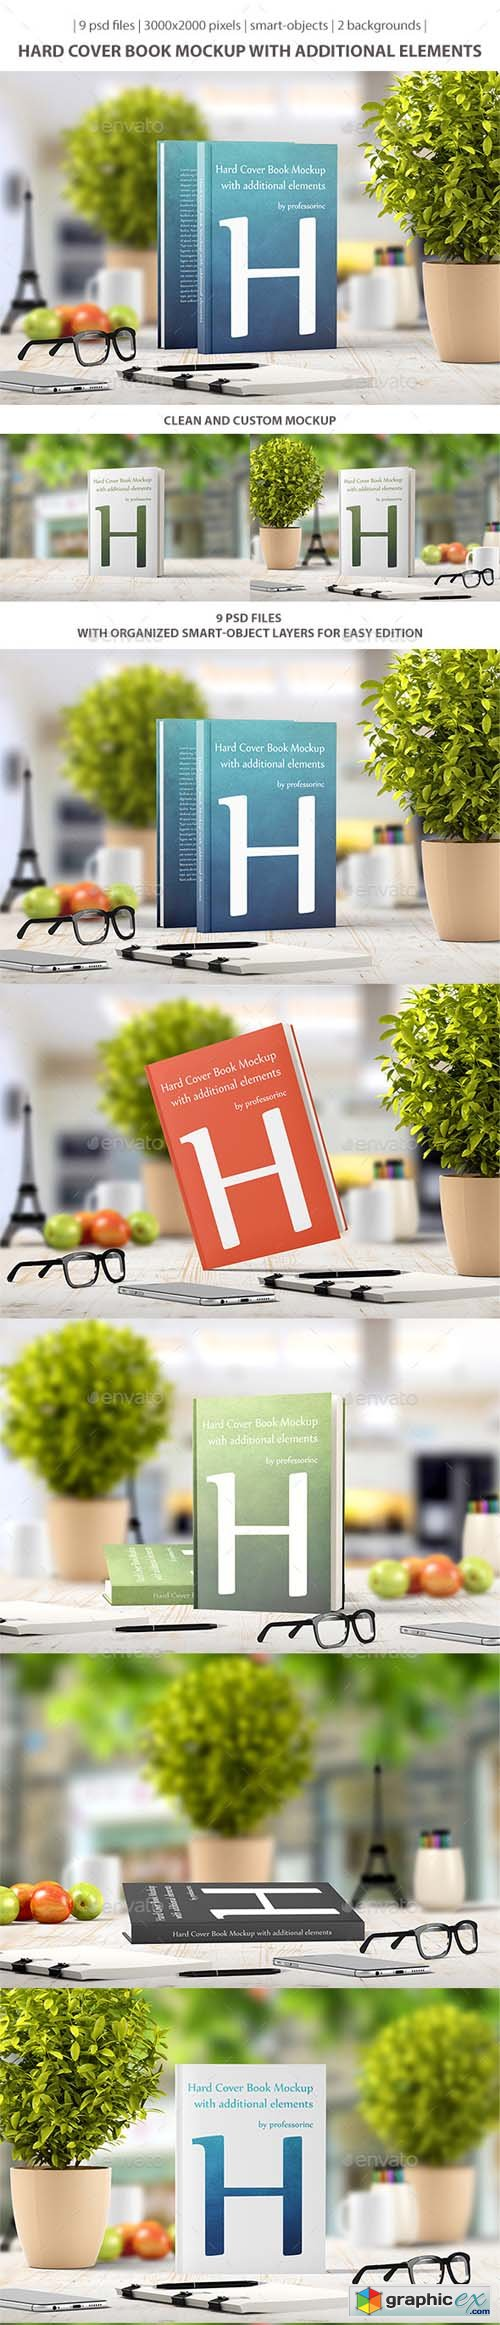 Hard Cover Book Mockup 9435271